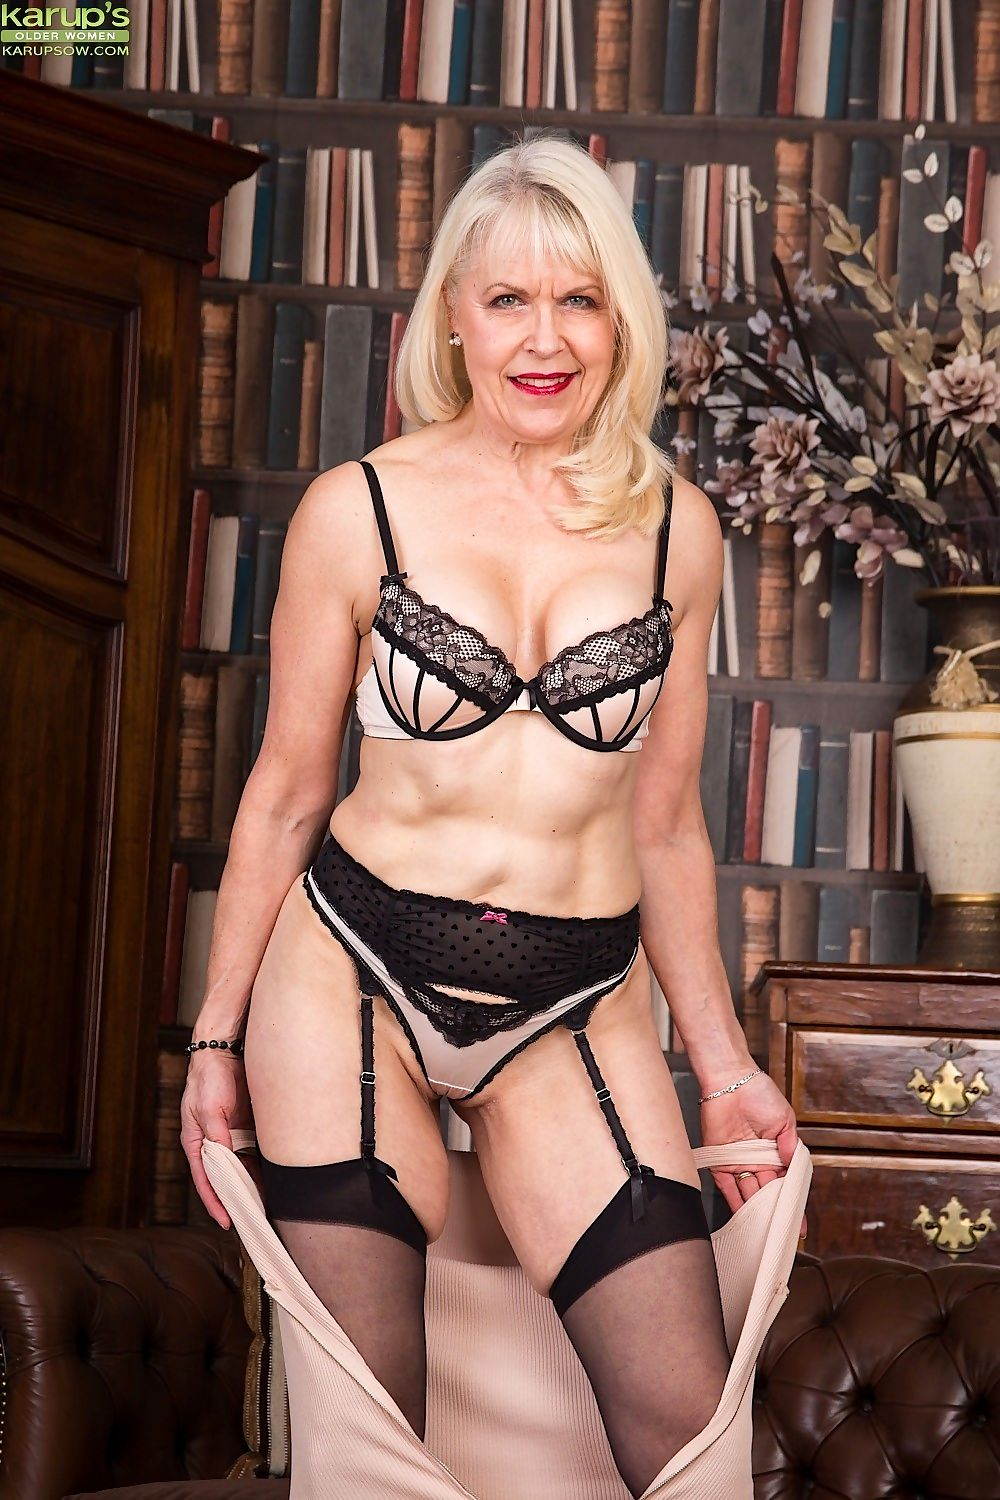 Mature blonde margaret holt posing naked in black stockings - part 1895